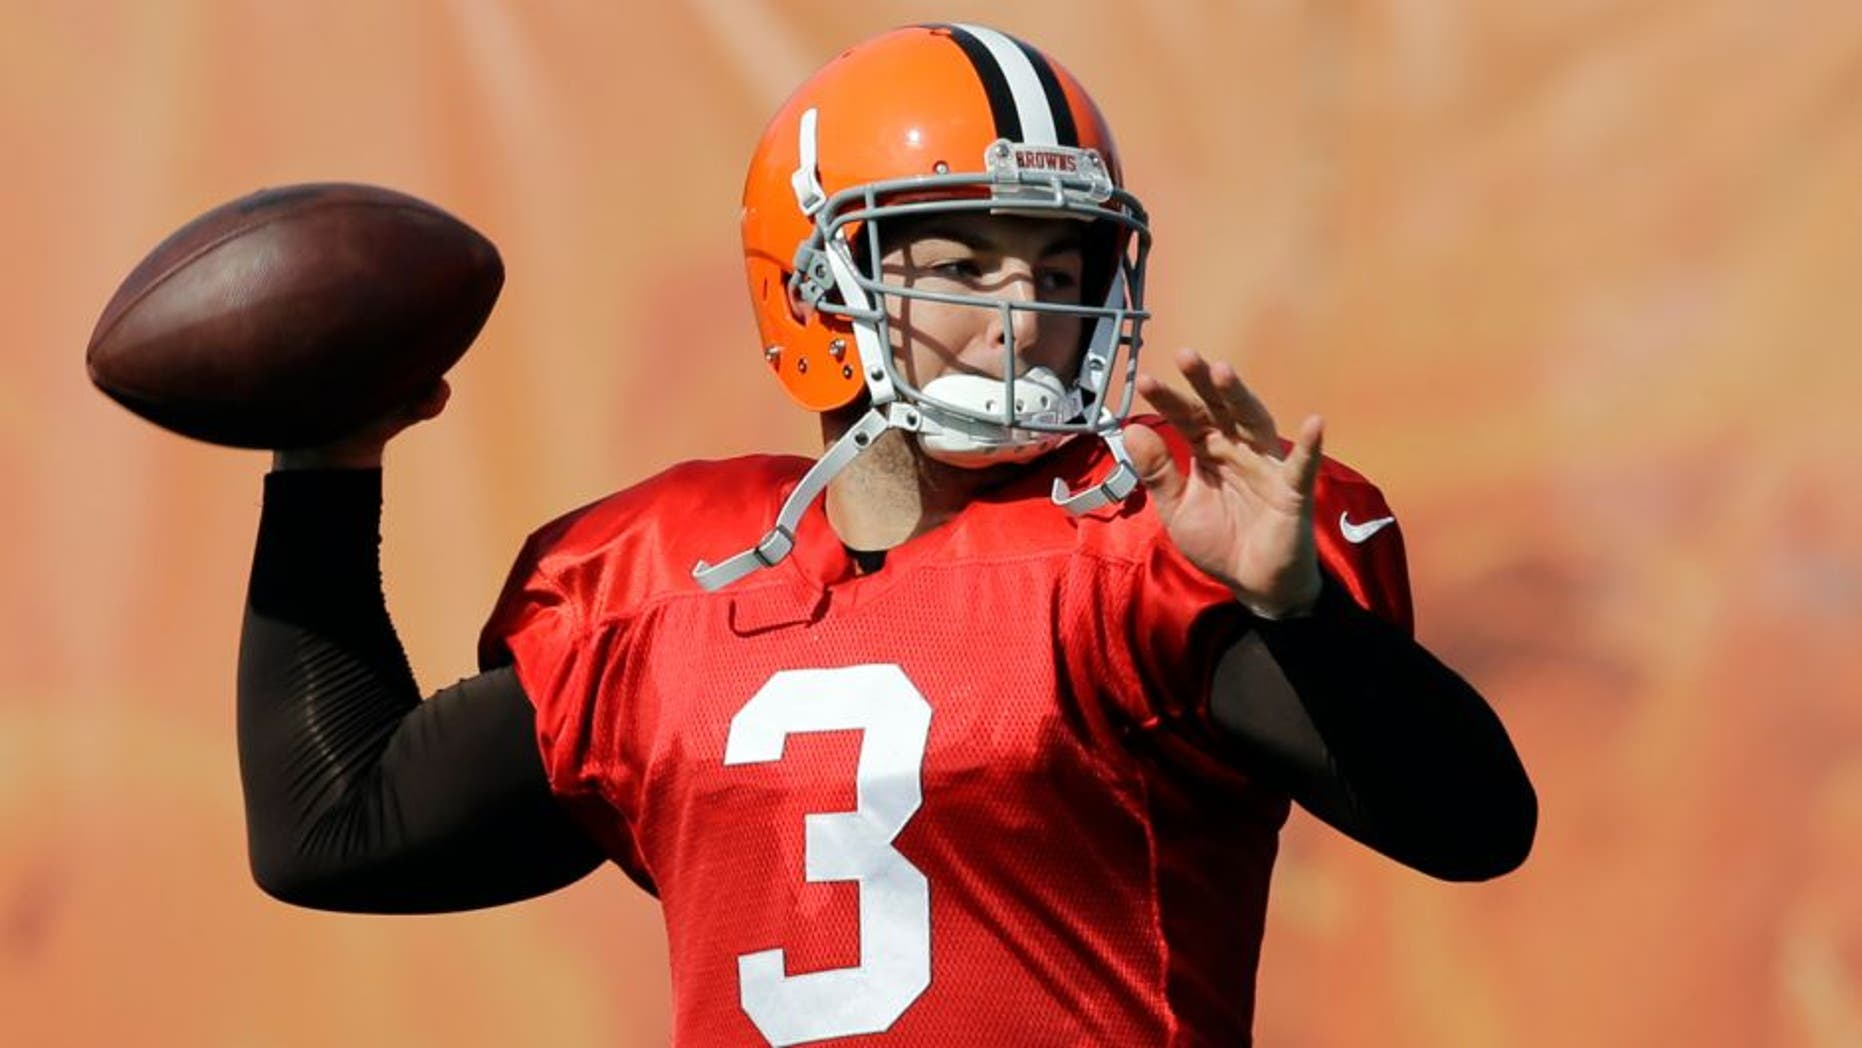 Cleveland Browns quarterback Rex Grossman passes during practice at NFL football training camp in Berea, Ohio Friday, Aug. 15, 2014. (AP Photo/Mark Duncan)